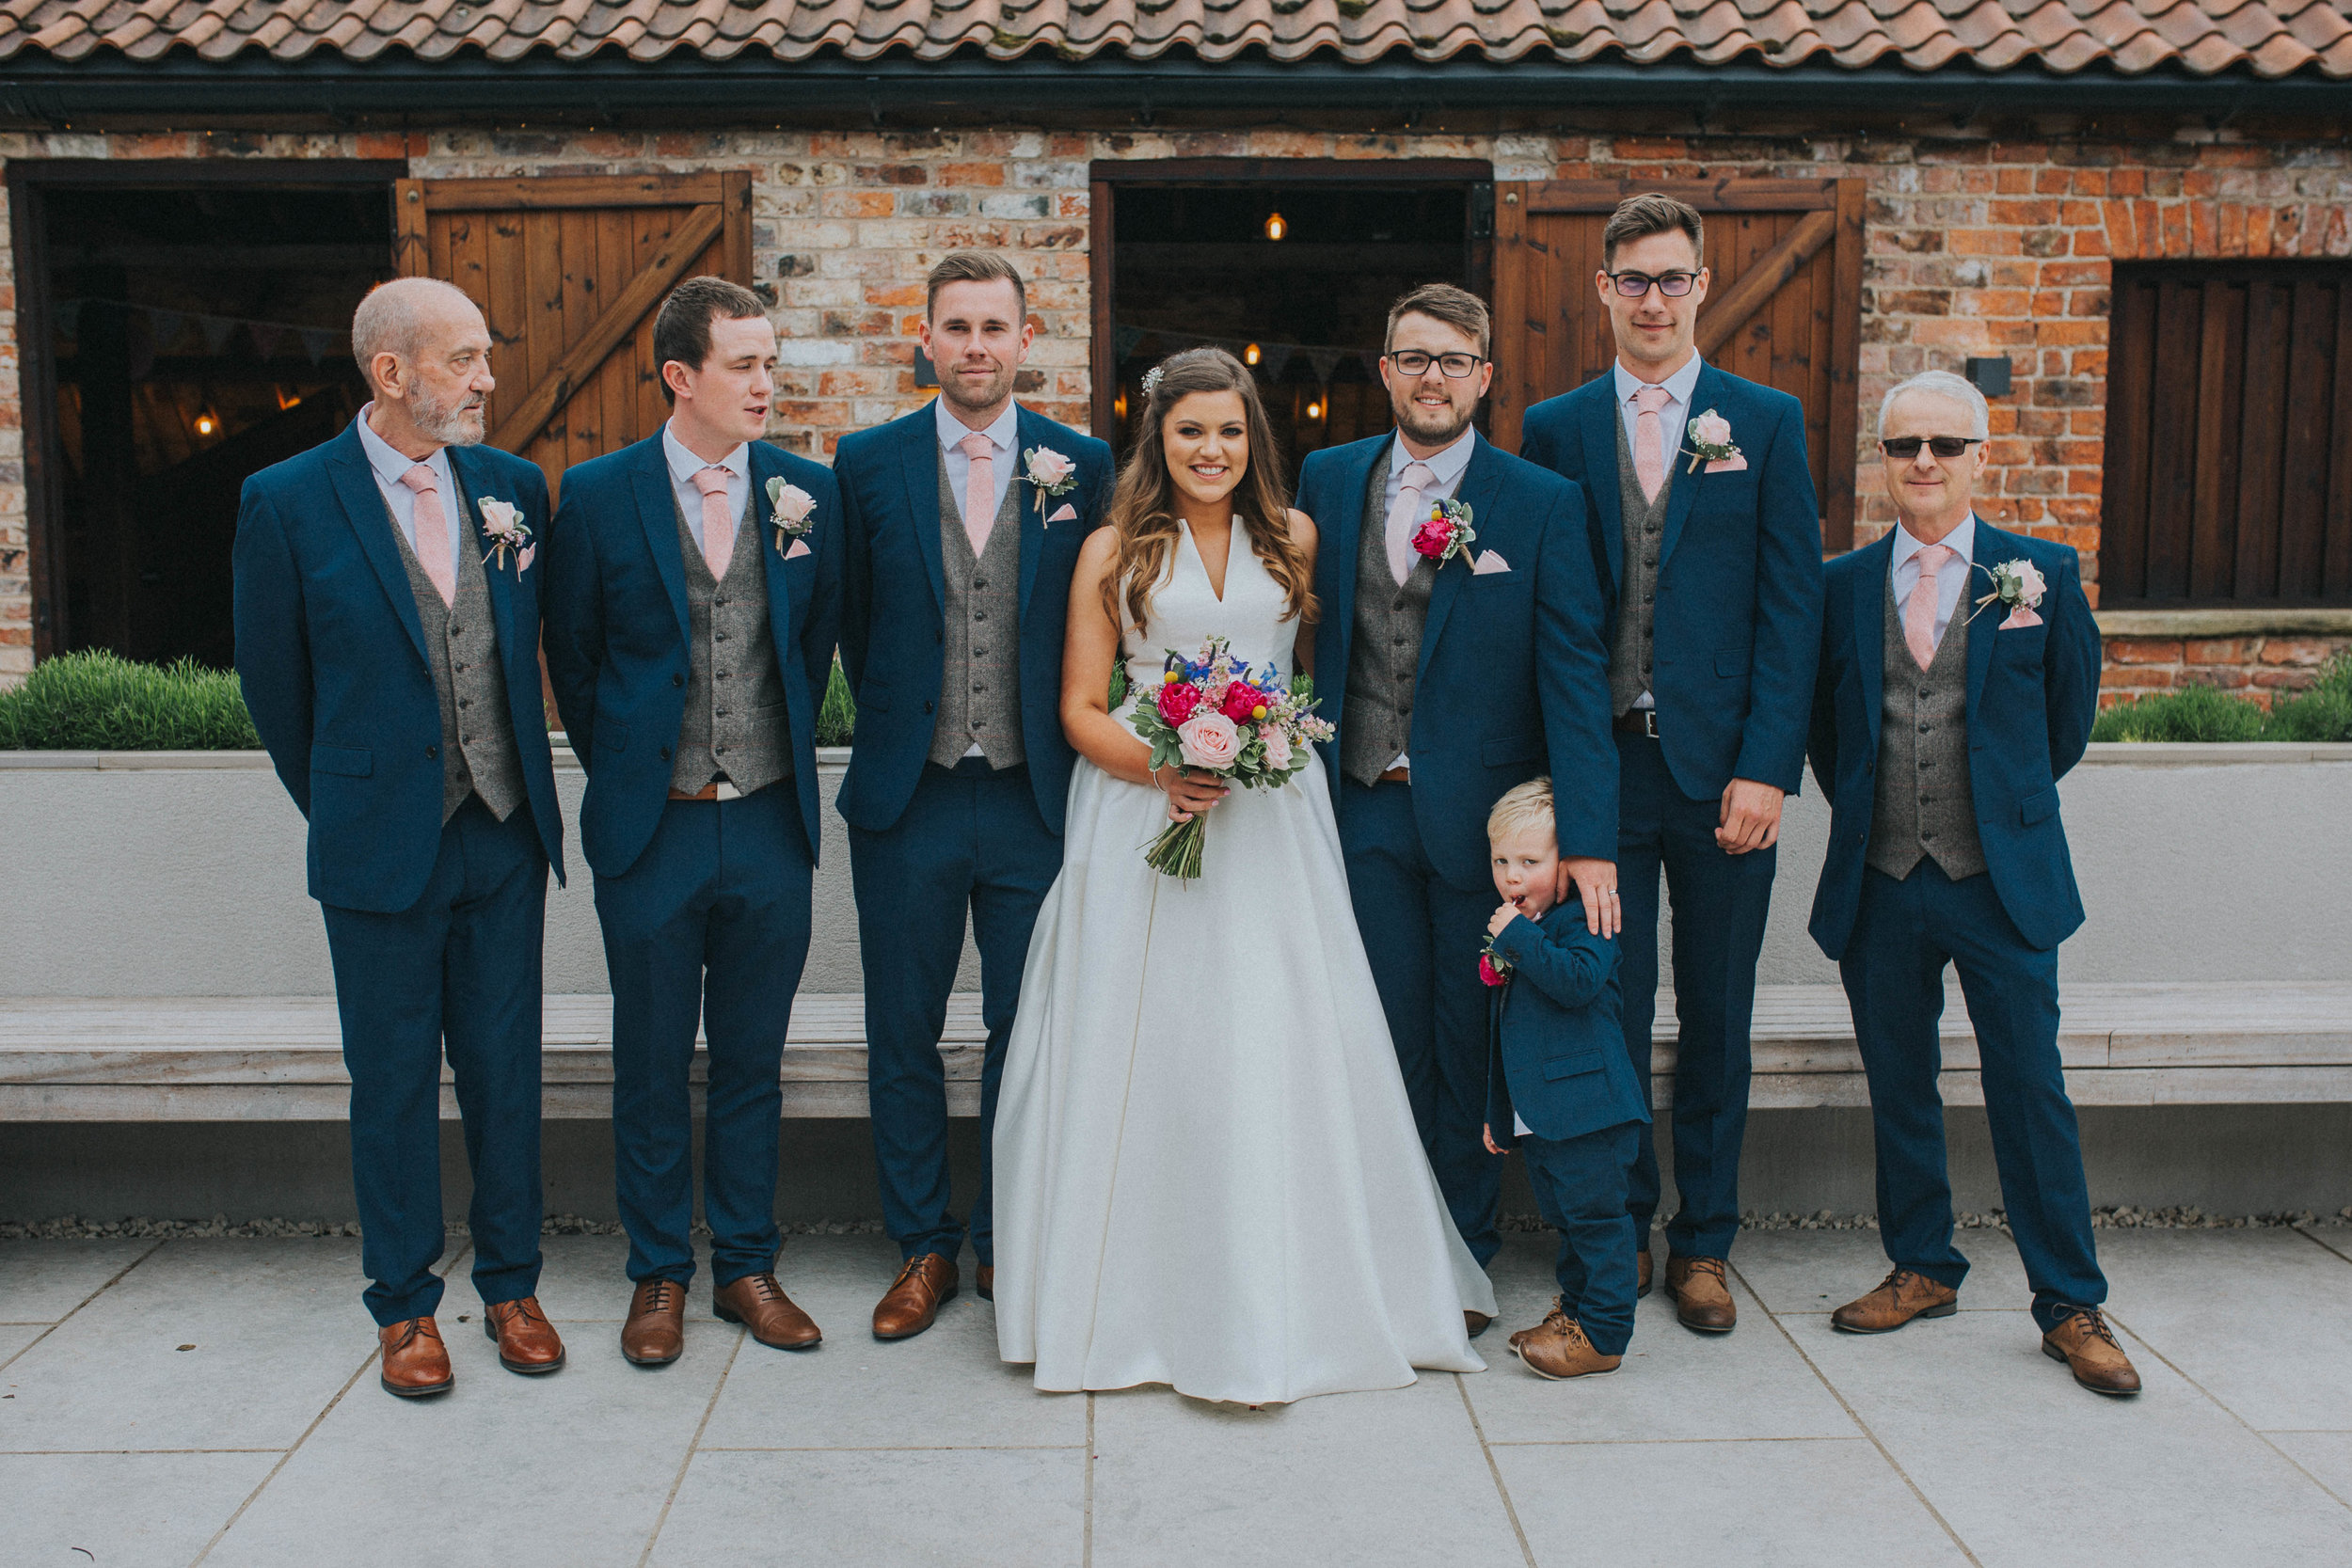 York colourful wedding photography at the normans